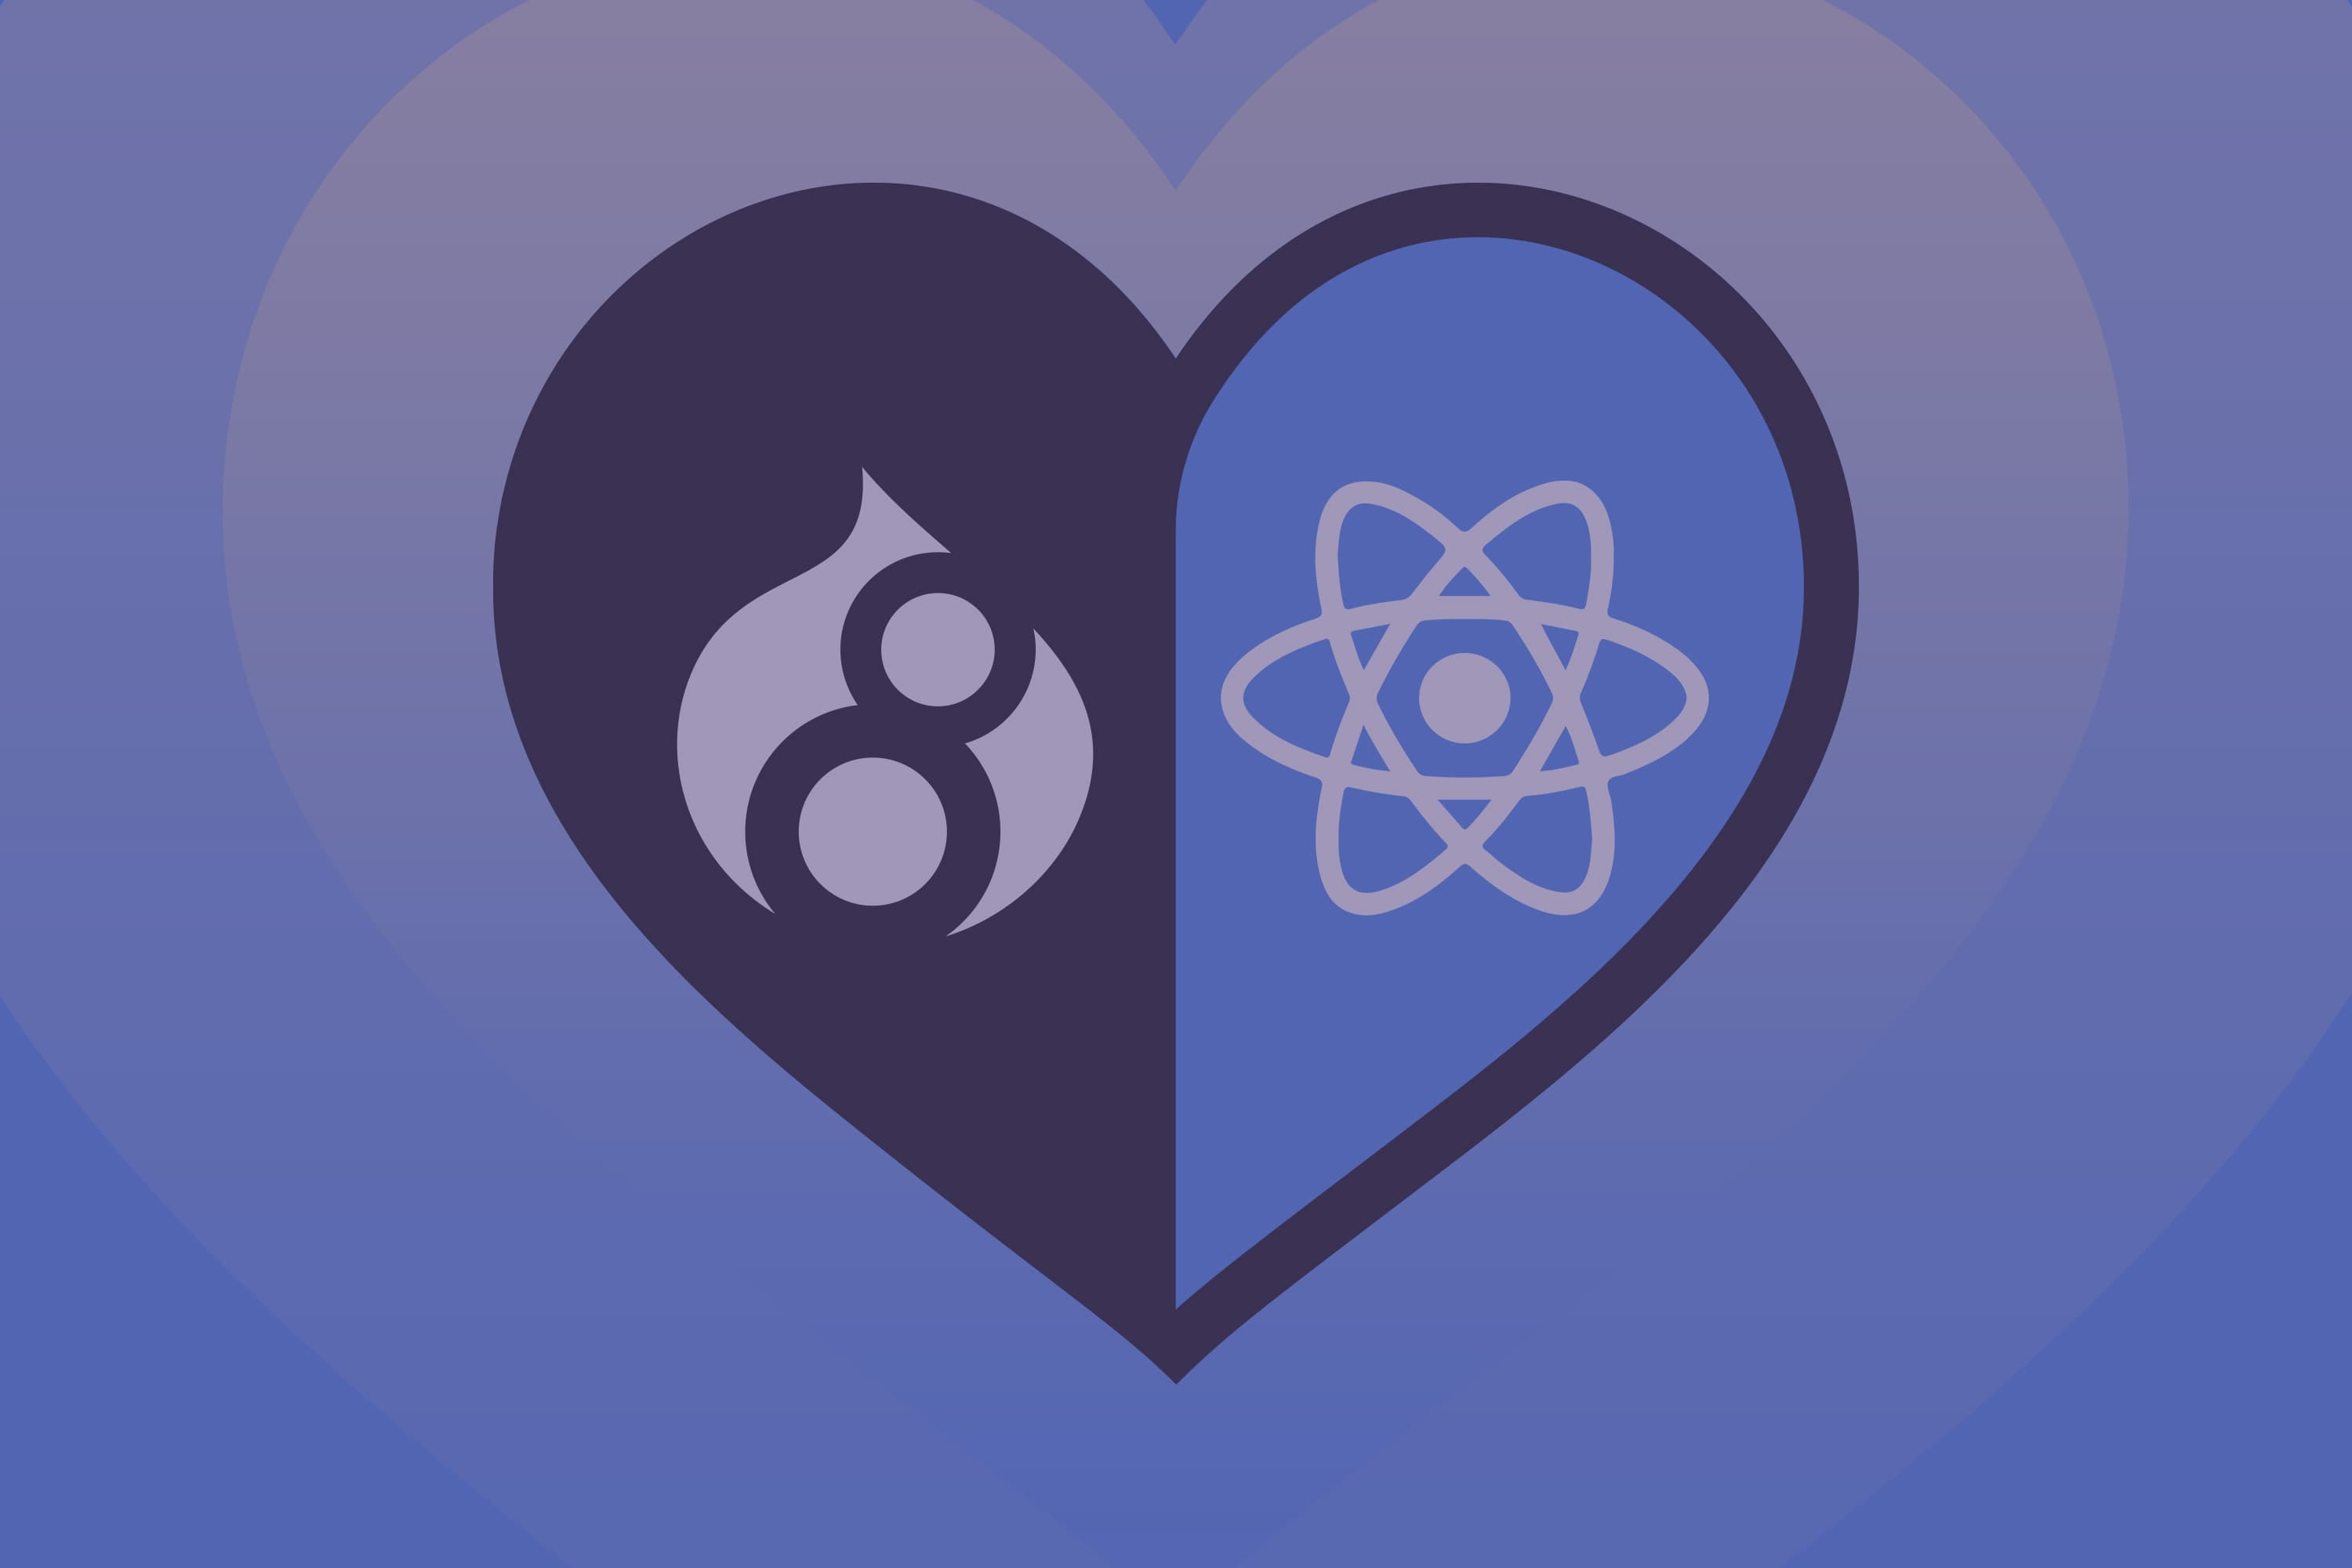 Drupal 8 + React. Decoupled (headless) vs. Progressively Decoupled